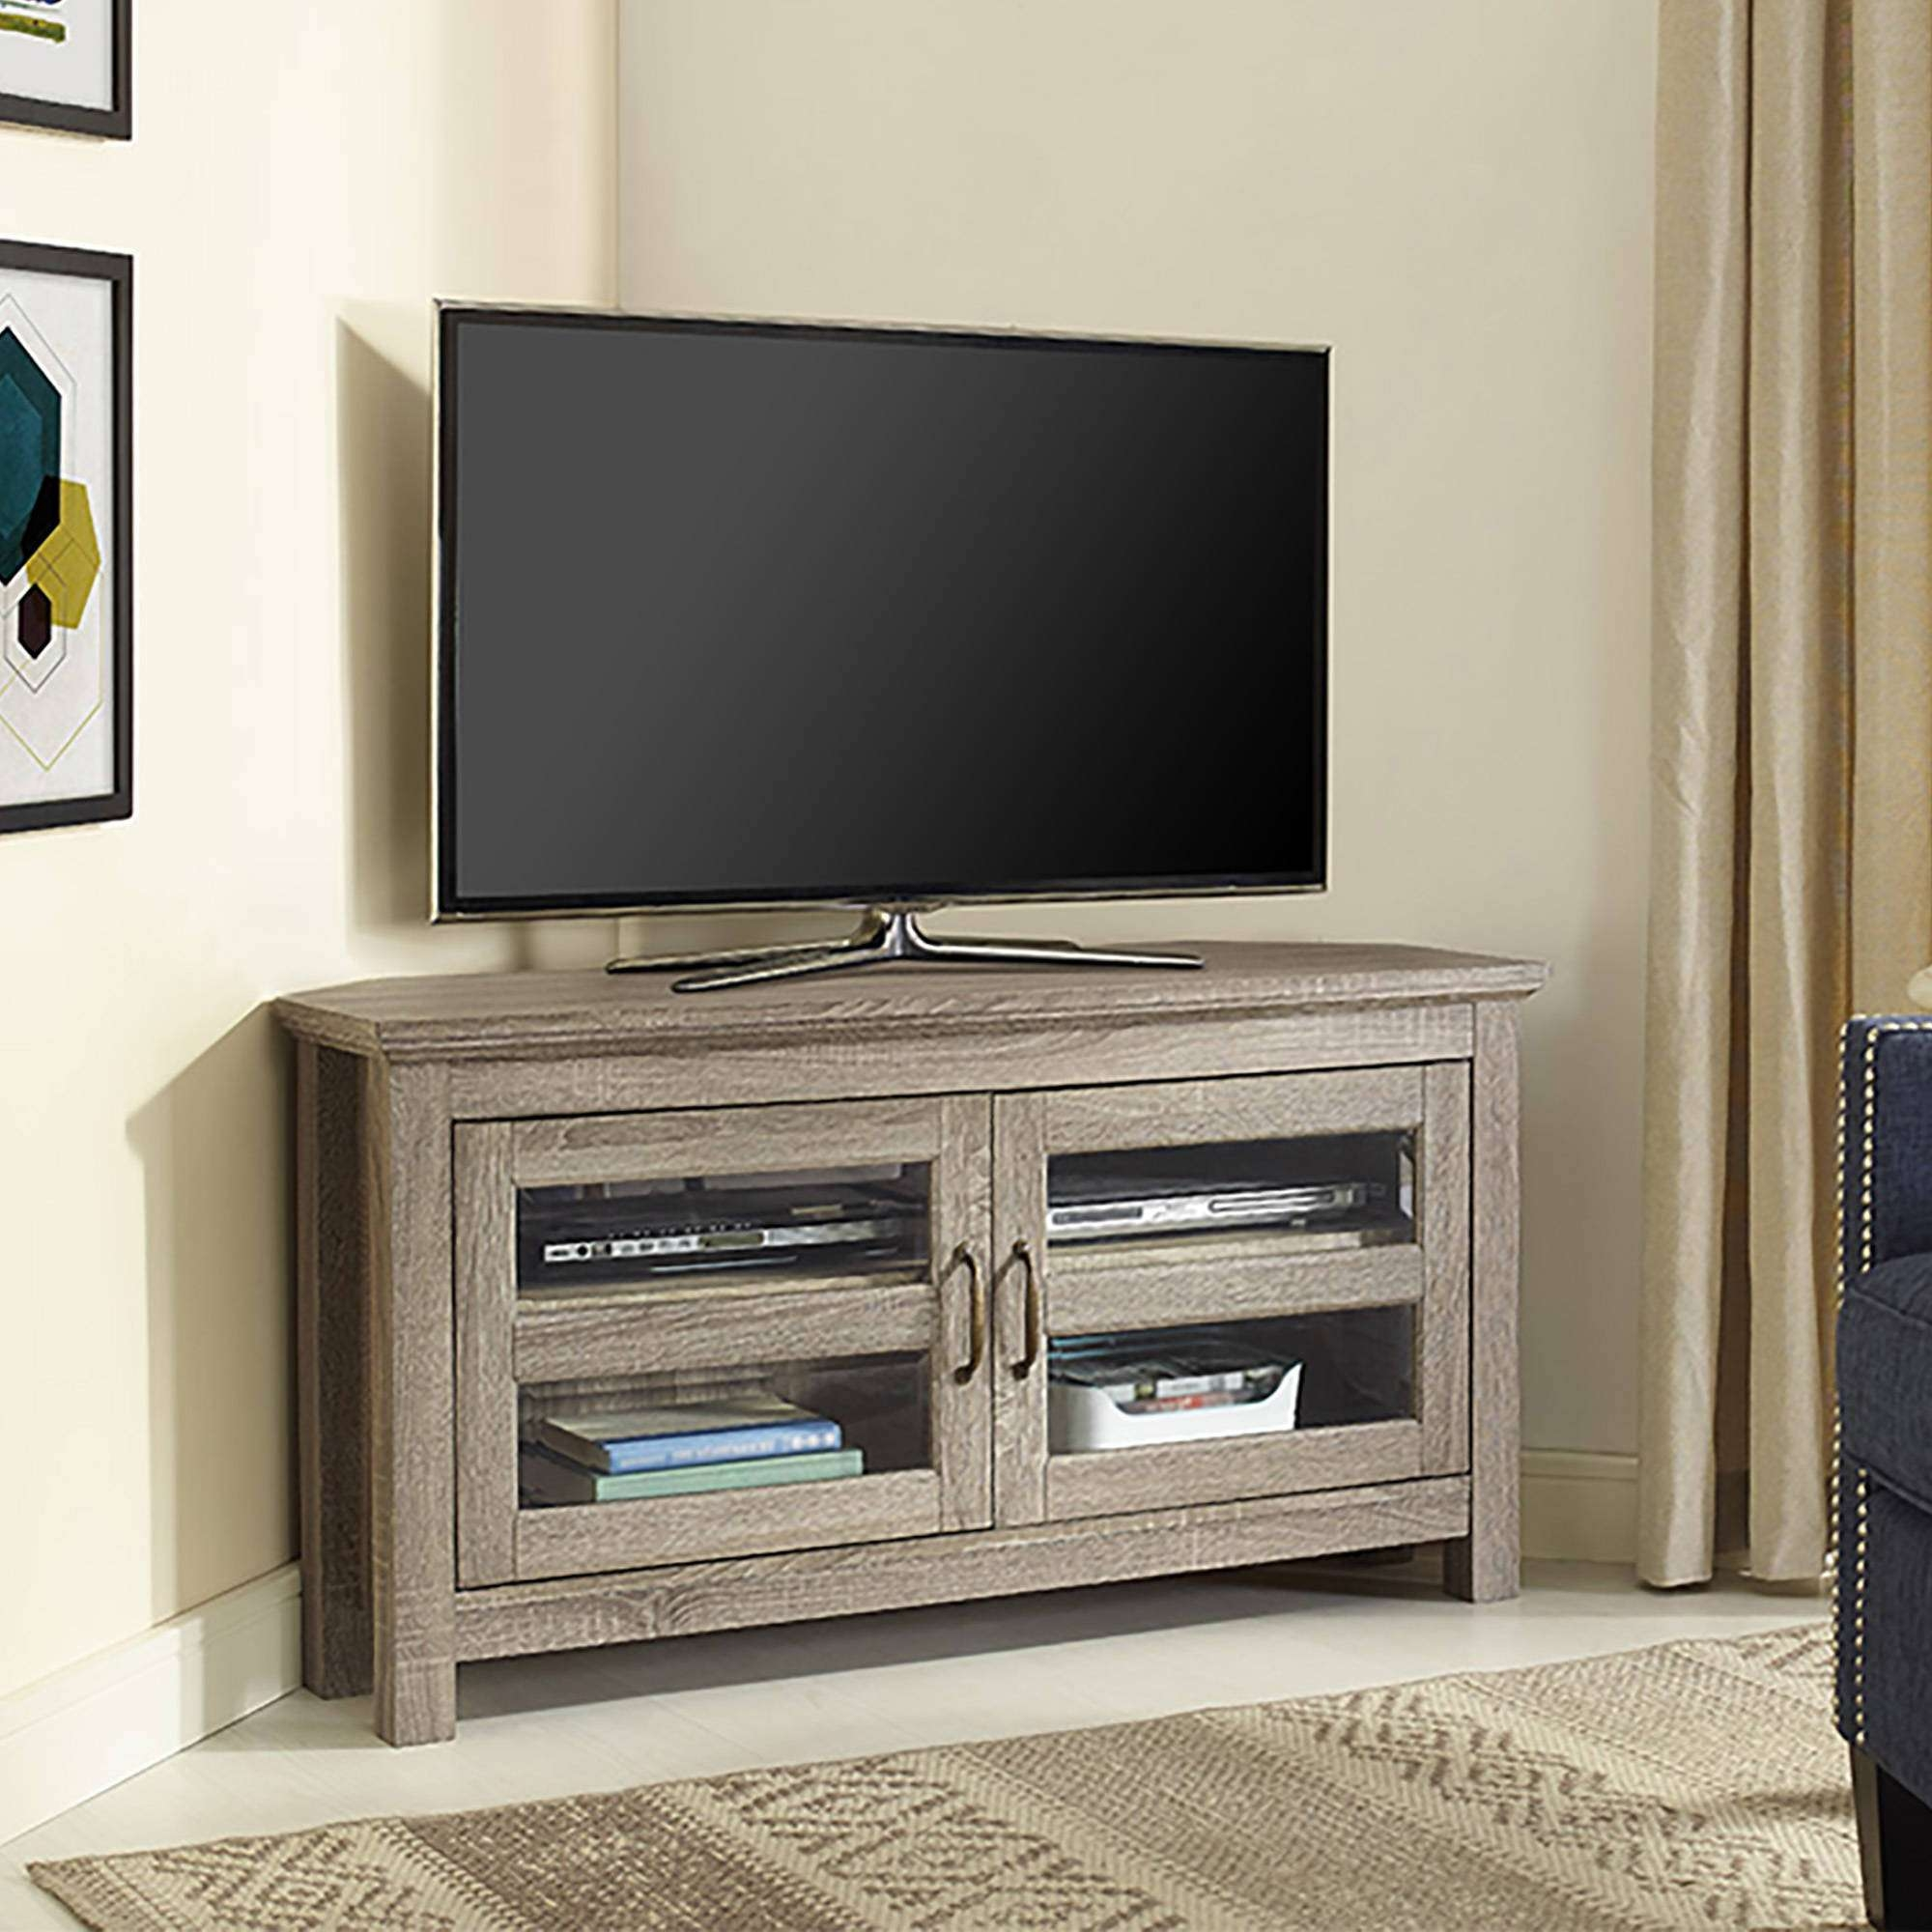 Tv : Espresso Tv Stands Furniture Wonderful Expresso Tv Stands Regarding Expresso Tv Stands (View 10 of 15)